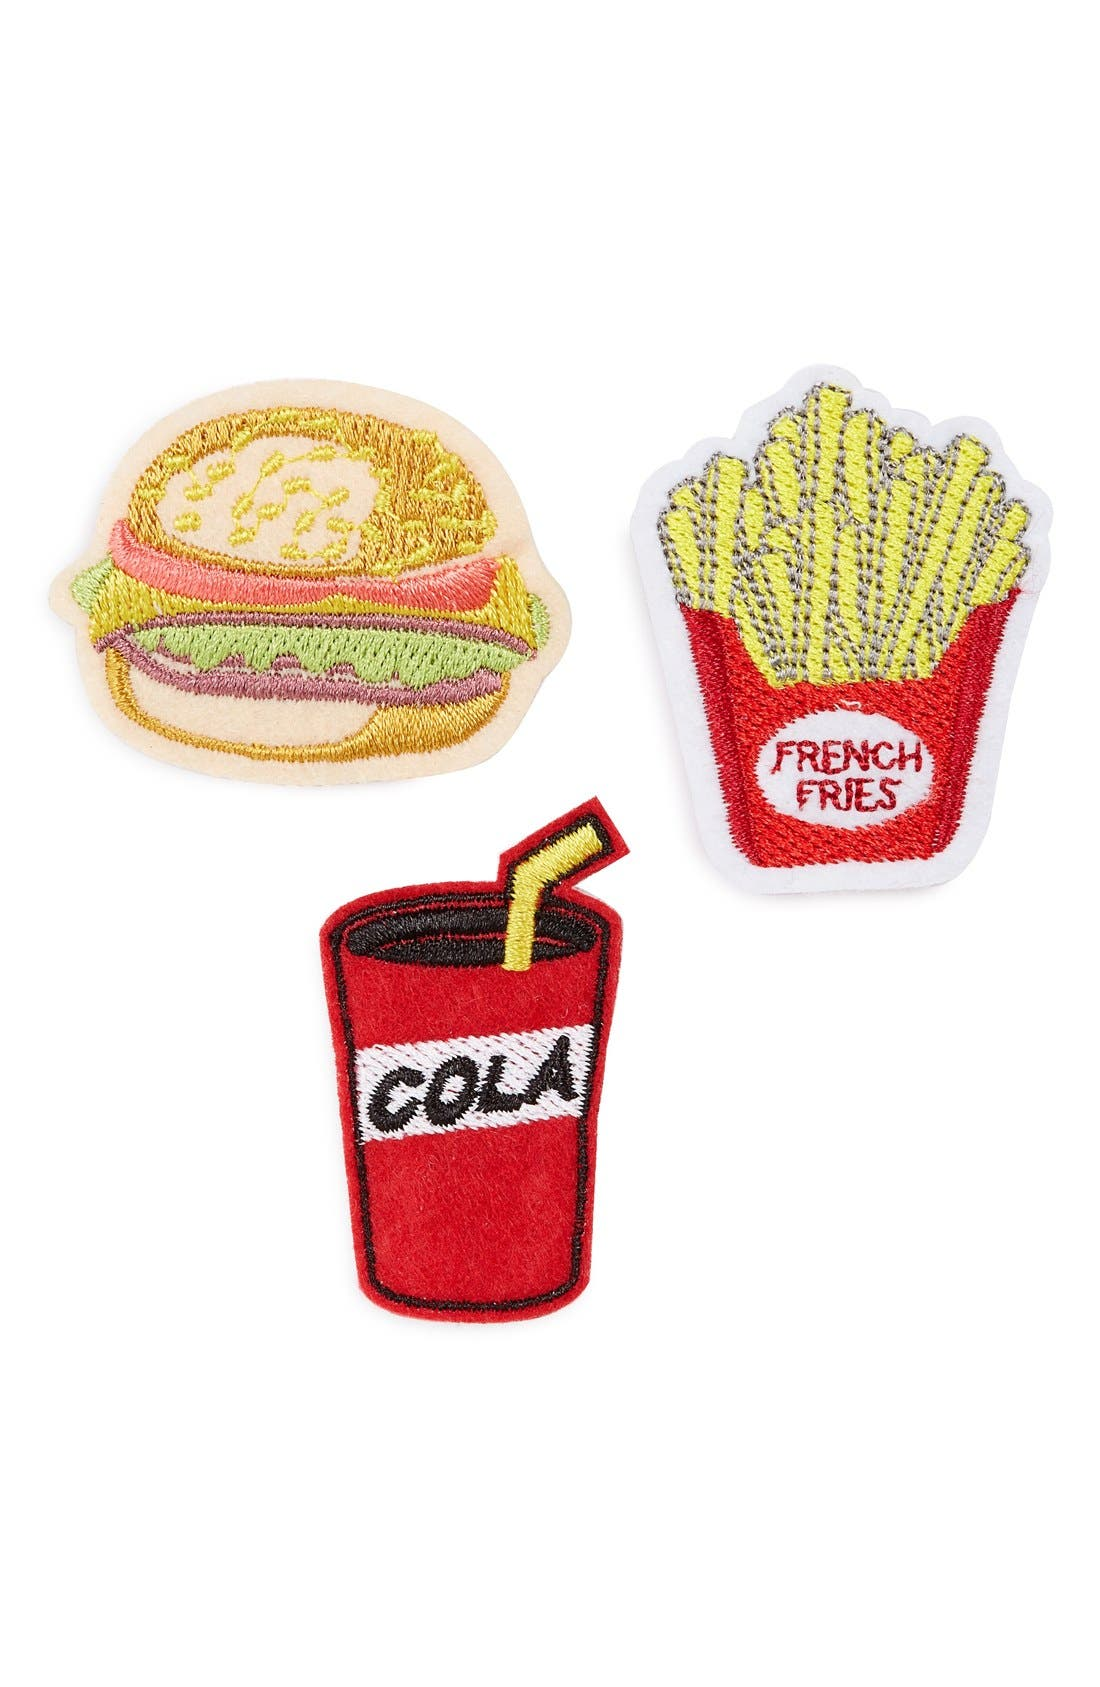 Alternate Image 1 Selected - Topshop 'Fast Food' Embroidered Brooches (Set of 3)